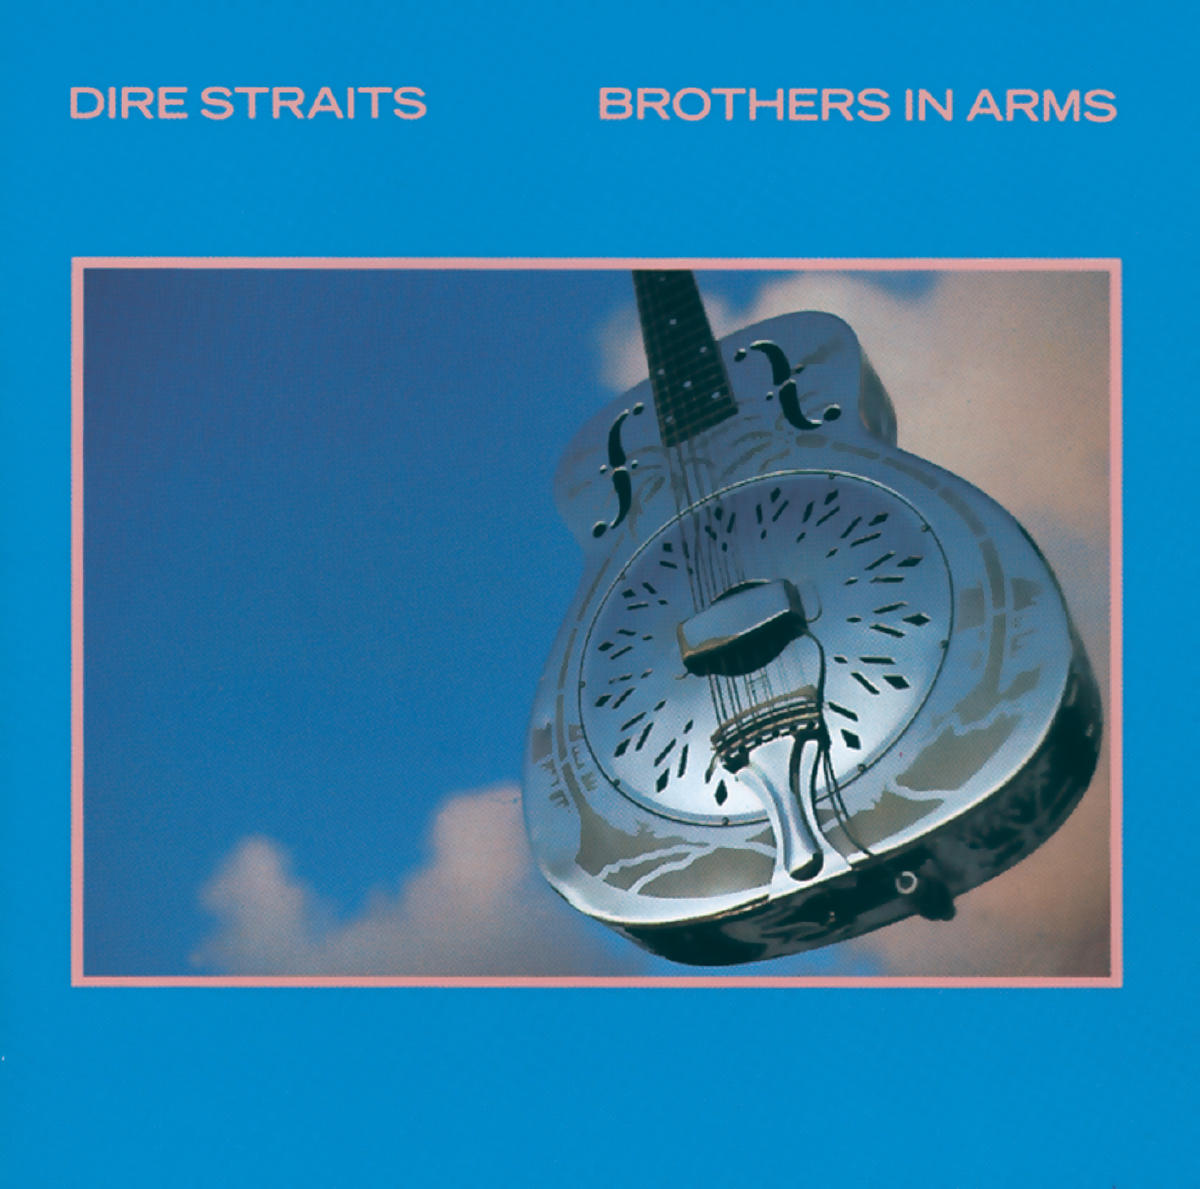 Ride Across the River by Dire Straits